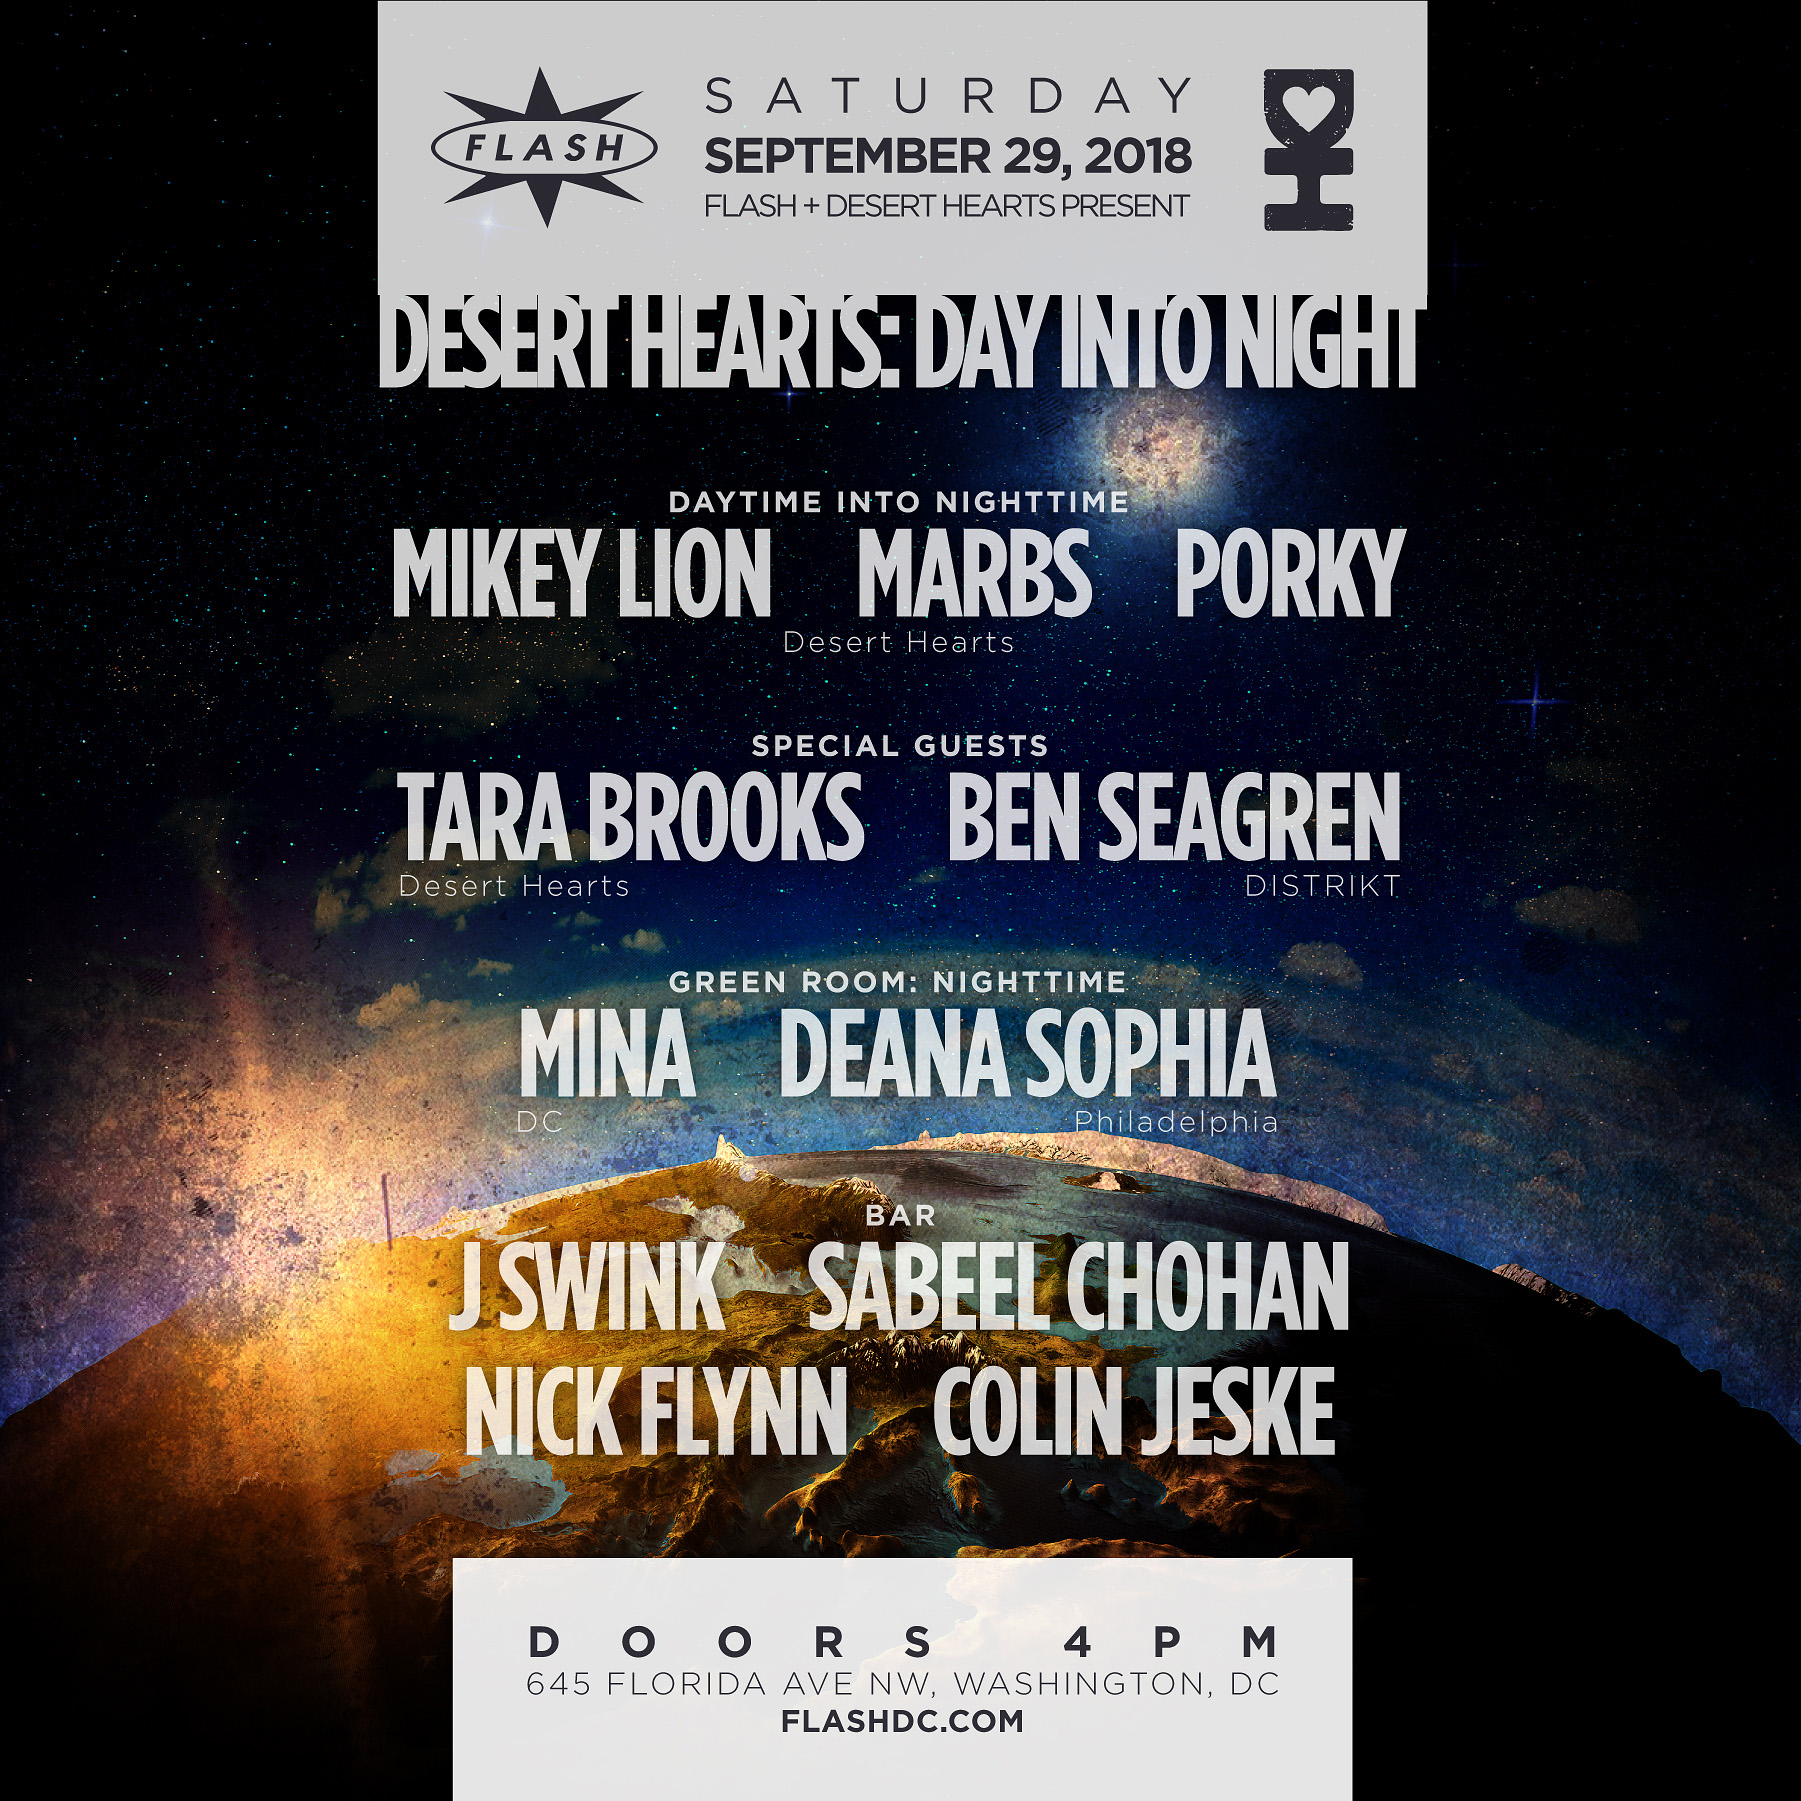 Desert Hearts Pres. Mikey Lion - Lee Reynolds - Marbs - Porky + Special Guest: Tara Brooks  event thumbnail